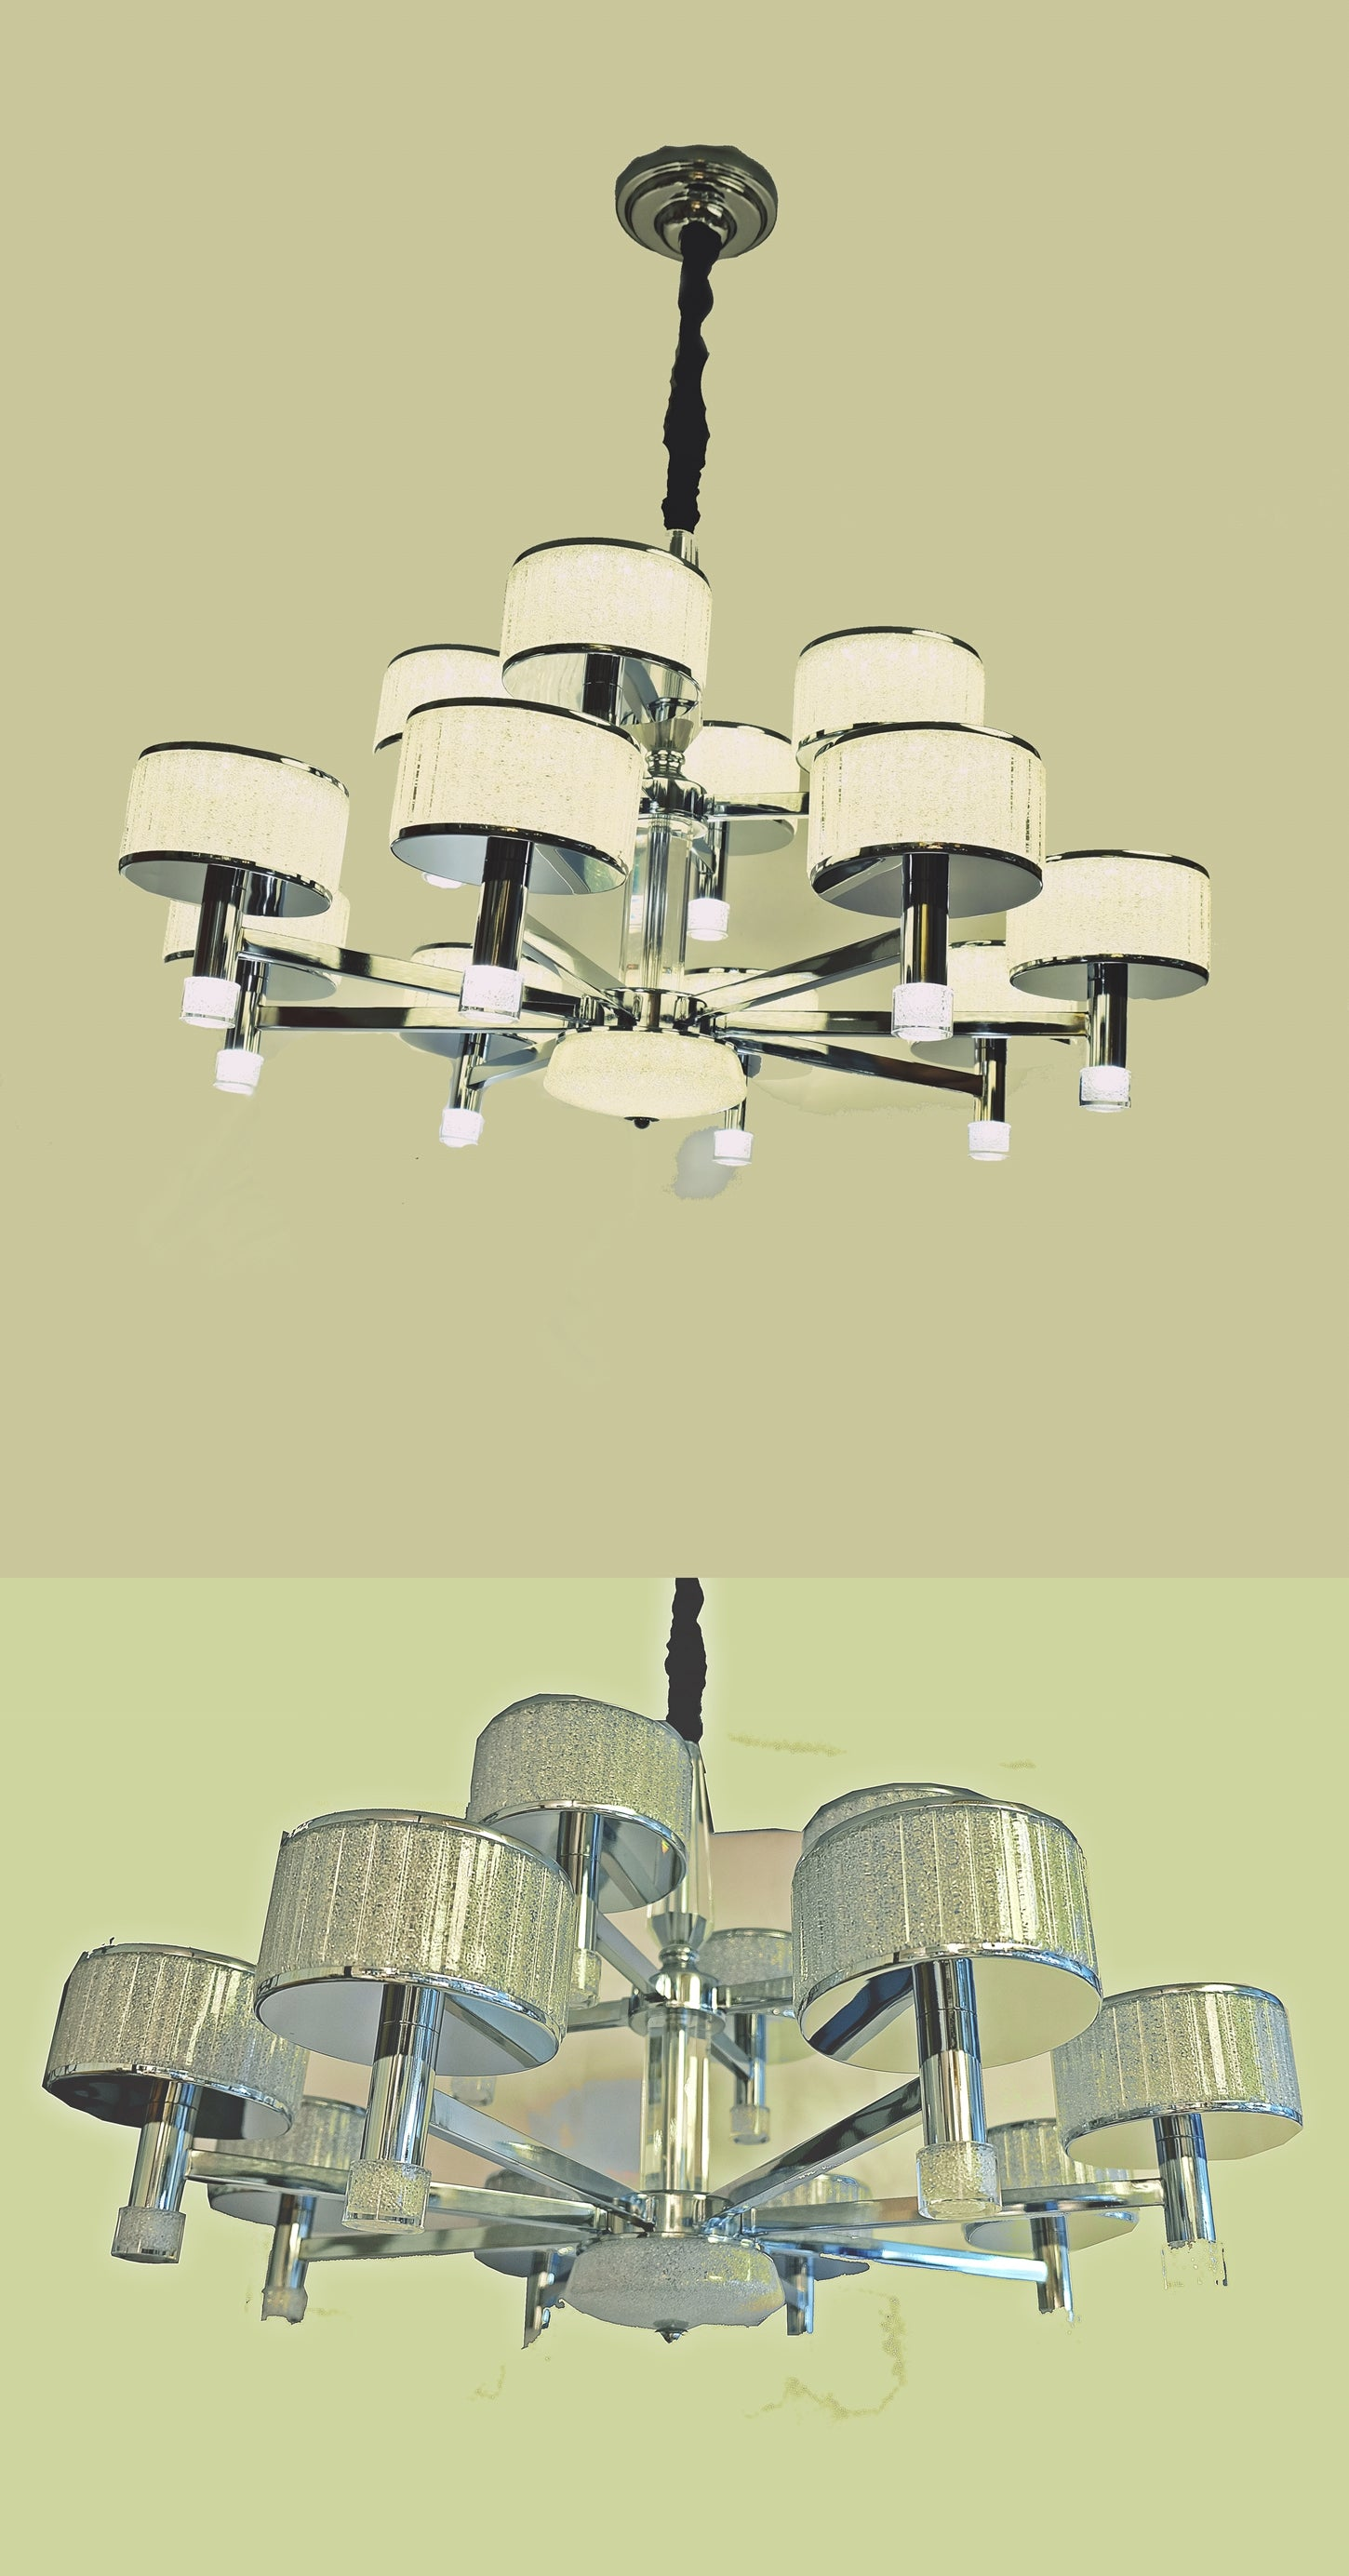 8+4 2-tier modern upwards cylindrical ceiling light [2139-8+4]